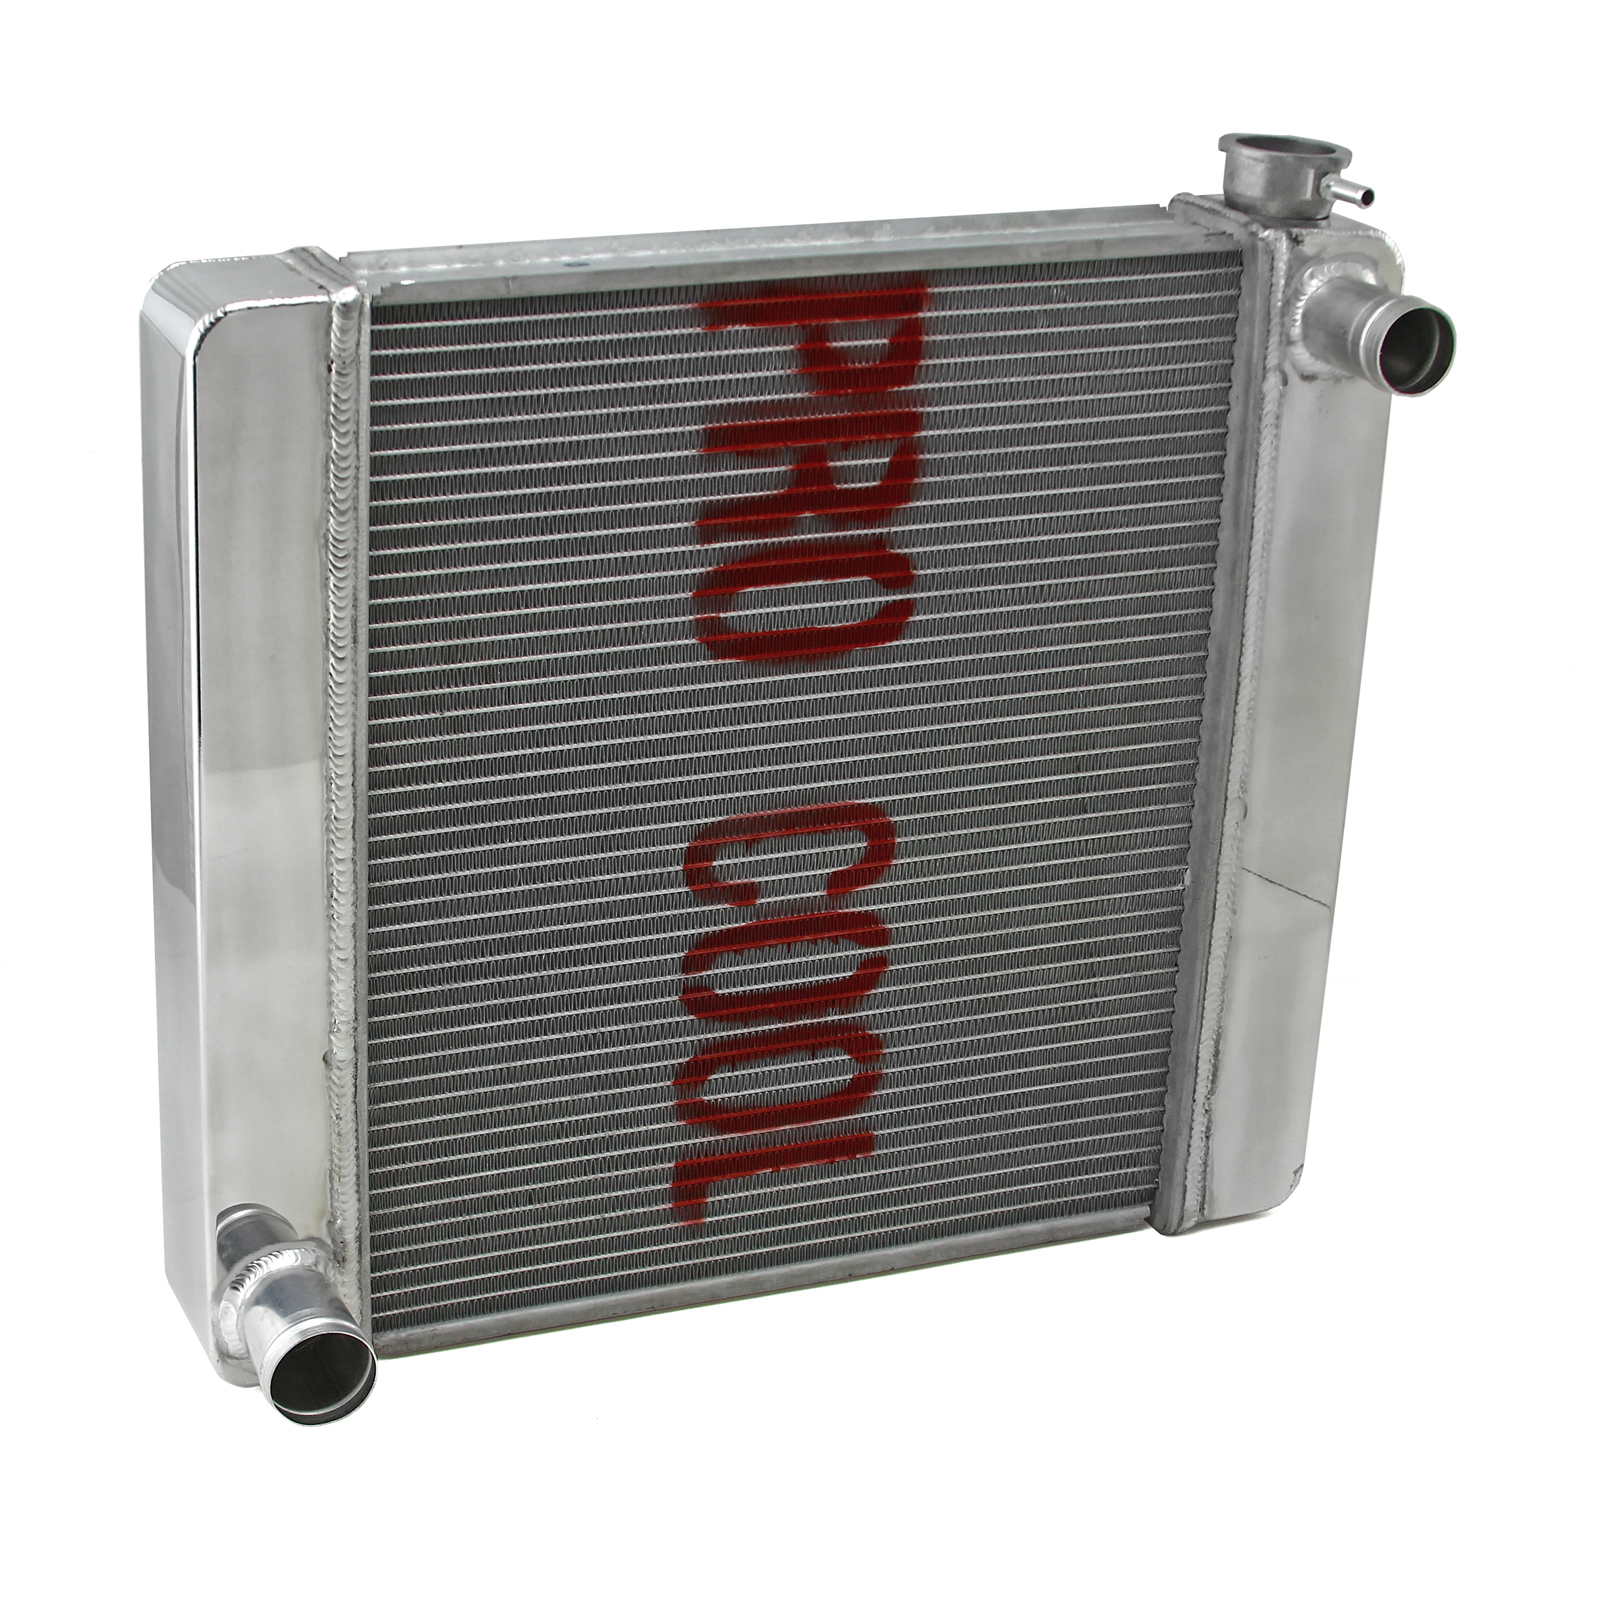 Ford Mopar 22x19x2.2 Aluminum Radiator (TR-BL O/Lets) Polished